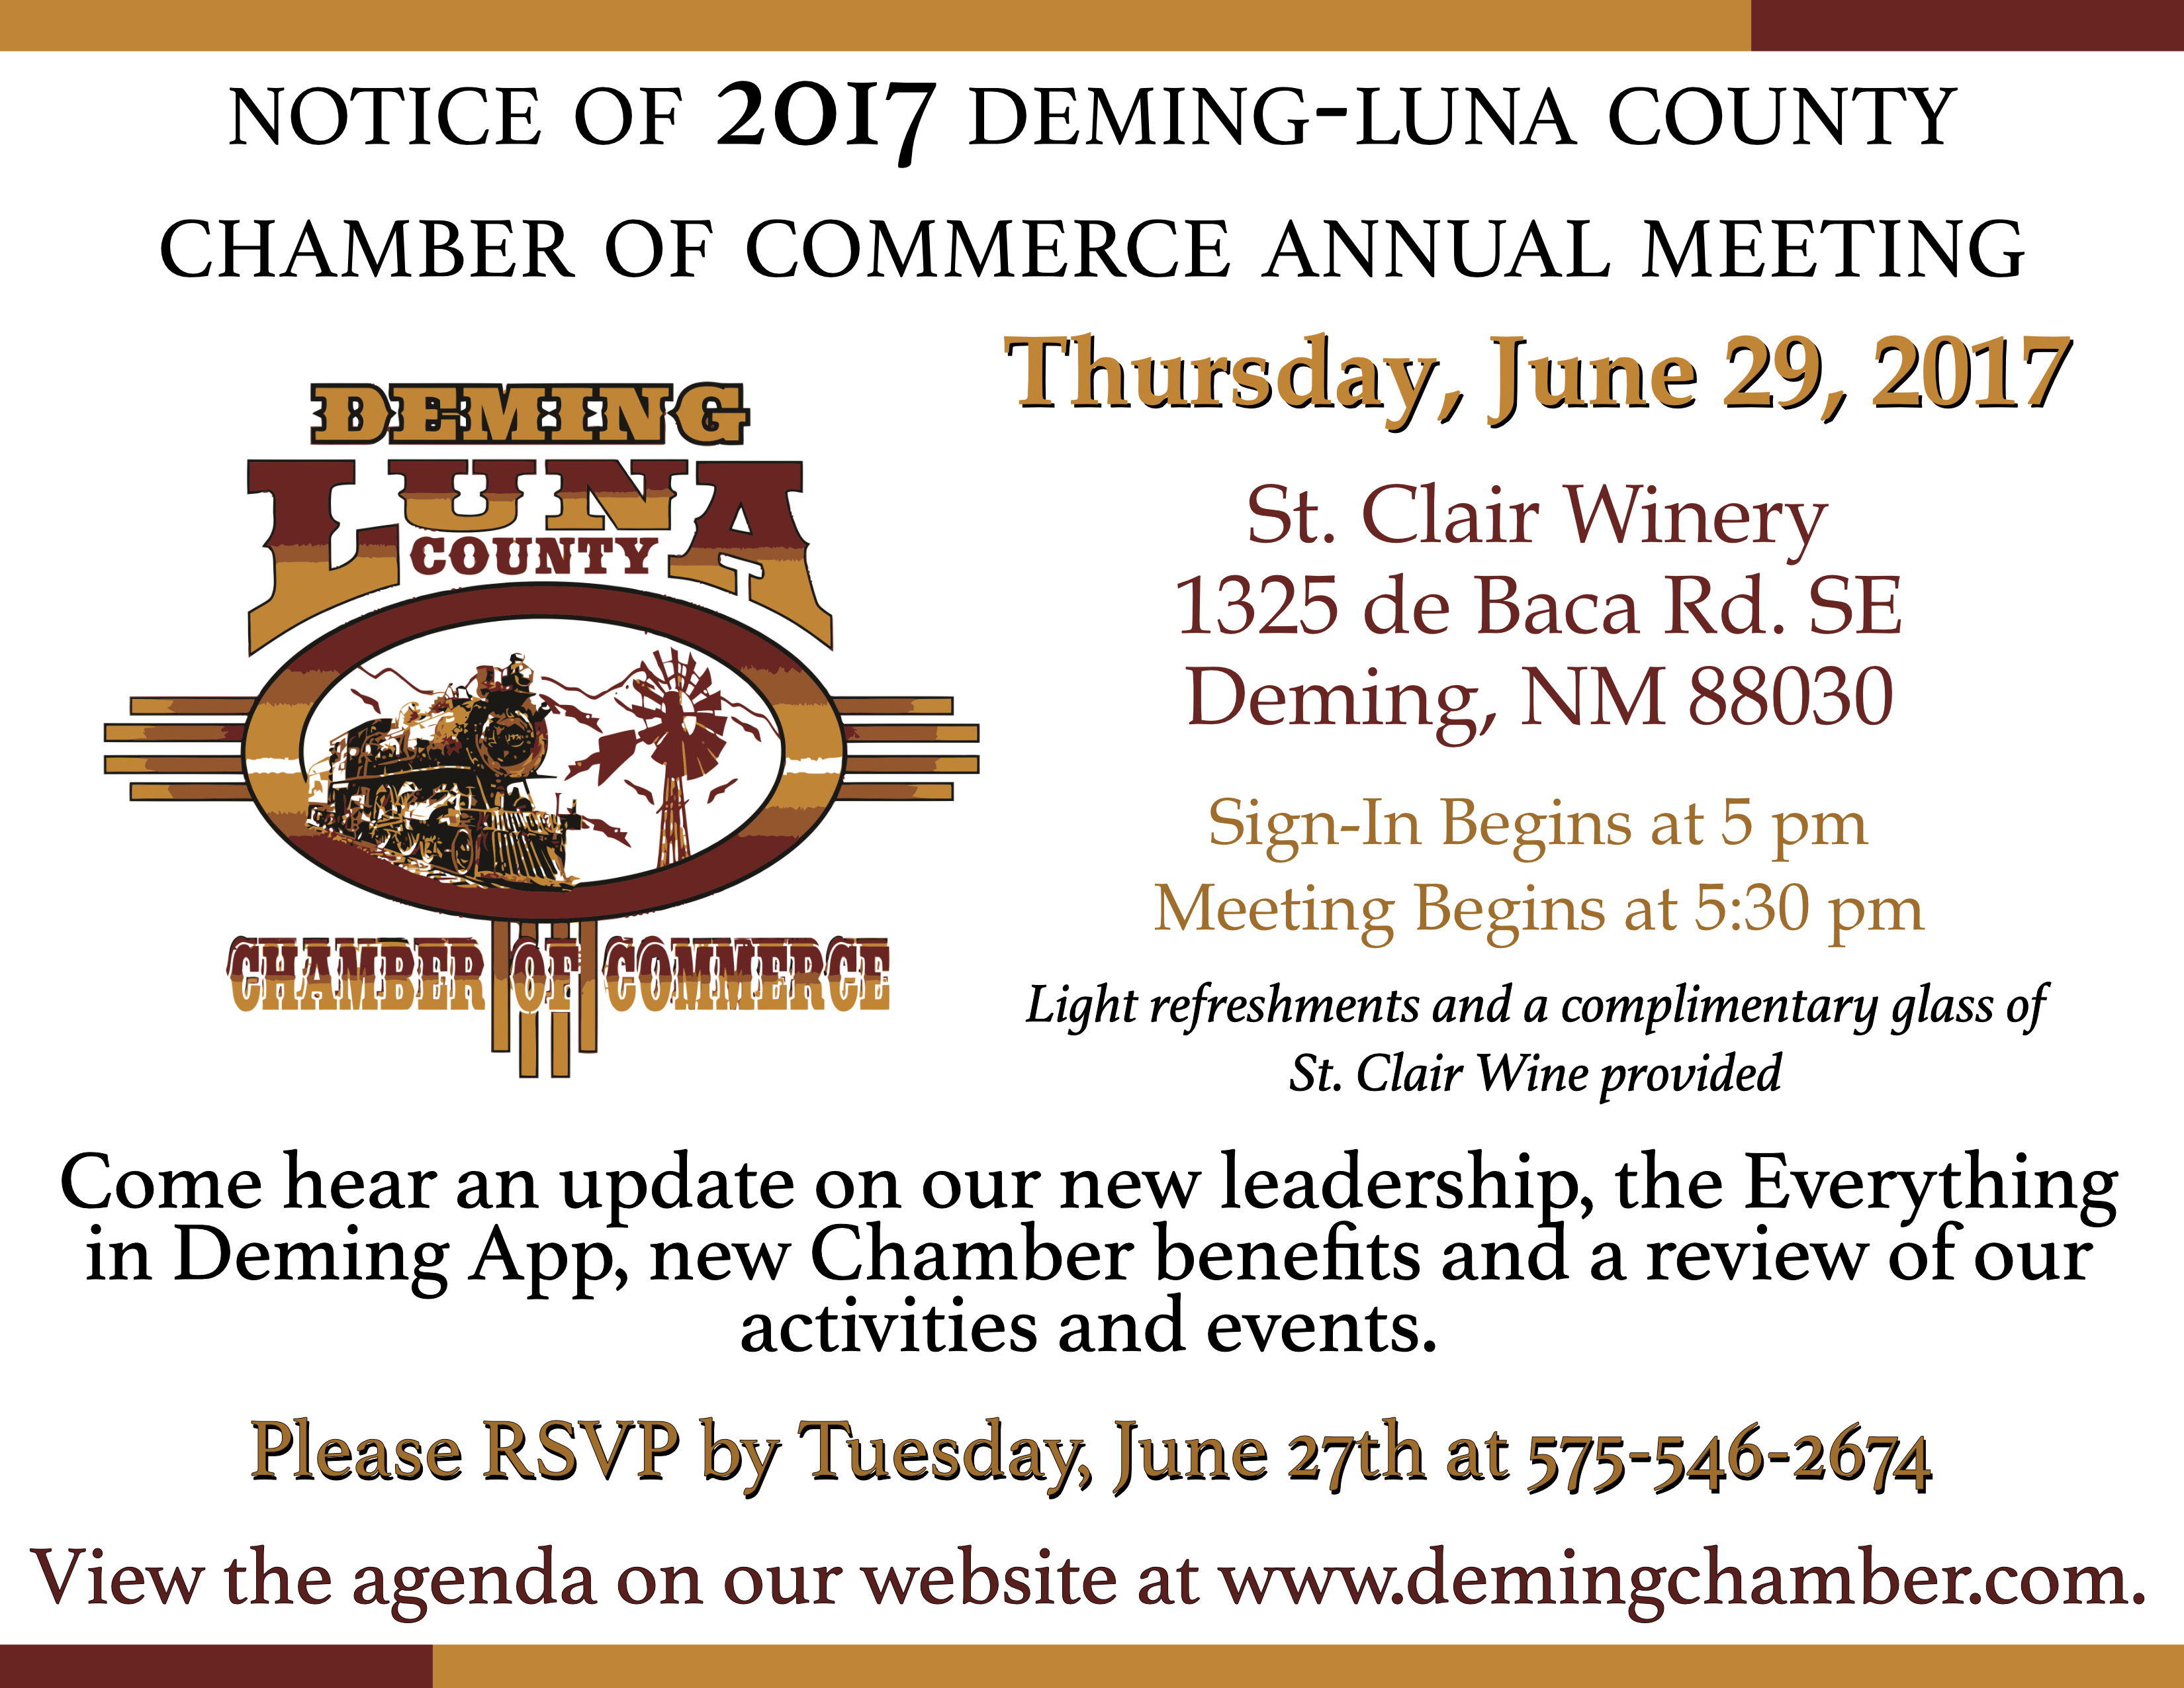 New mexico luna county columbus - The Deming Luna County Chamber Of Commerce Annual Meeting Is Coming